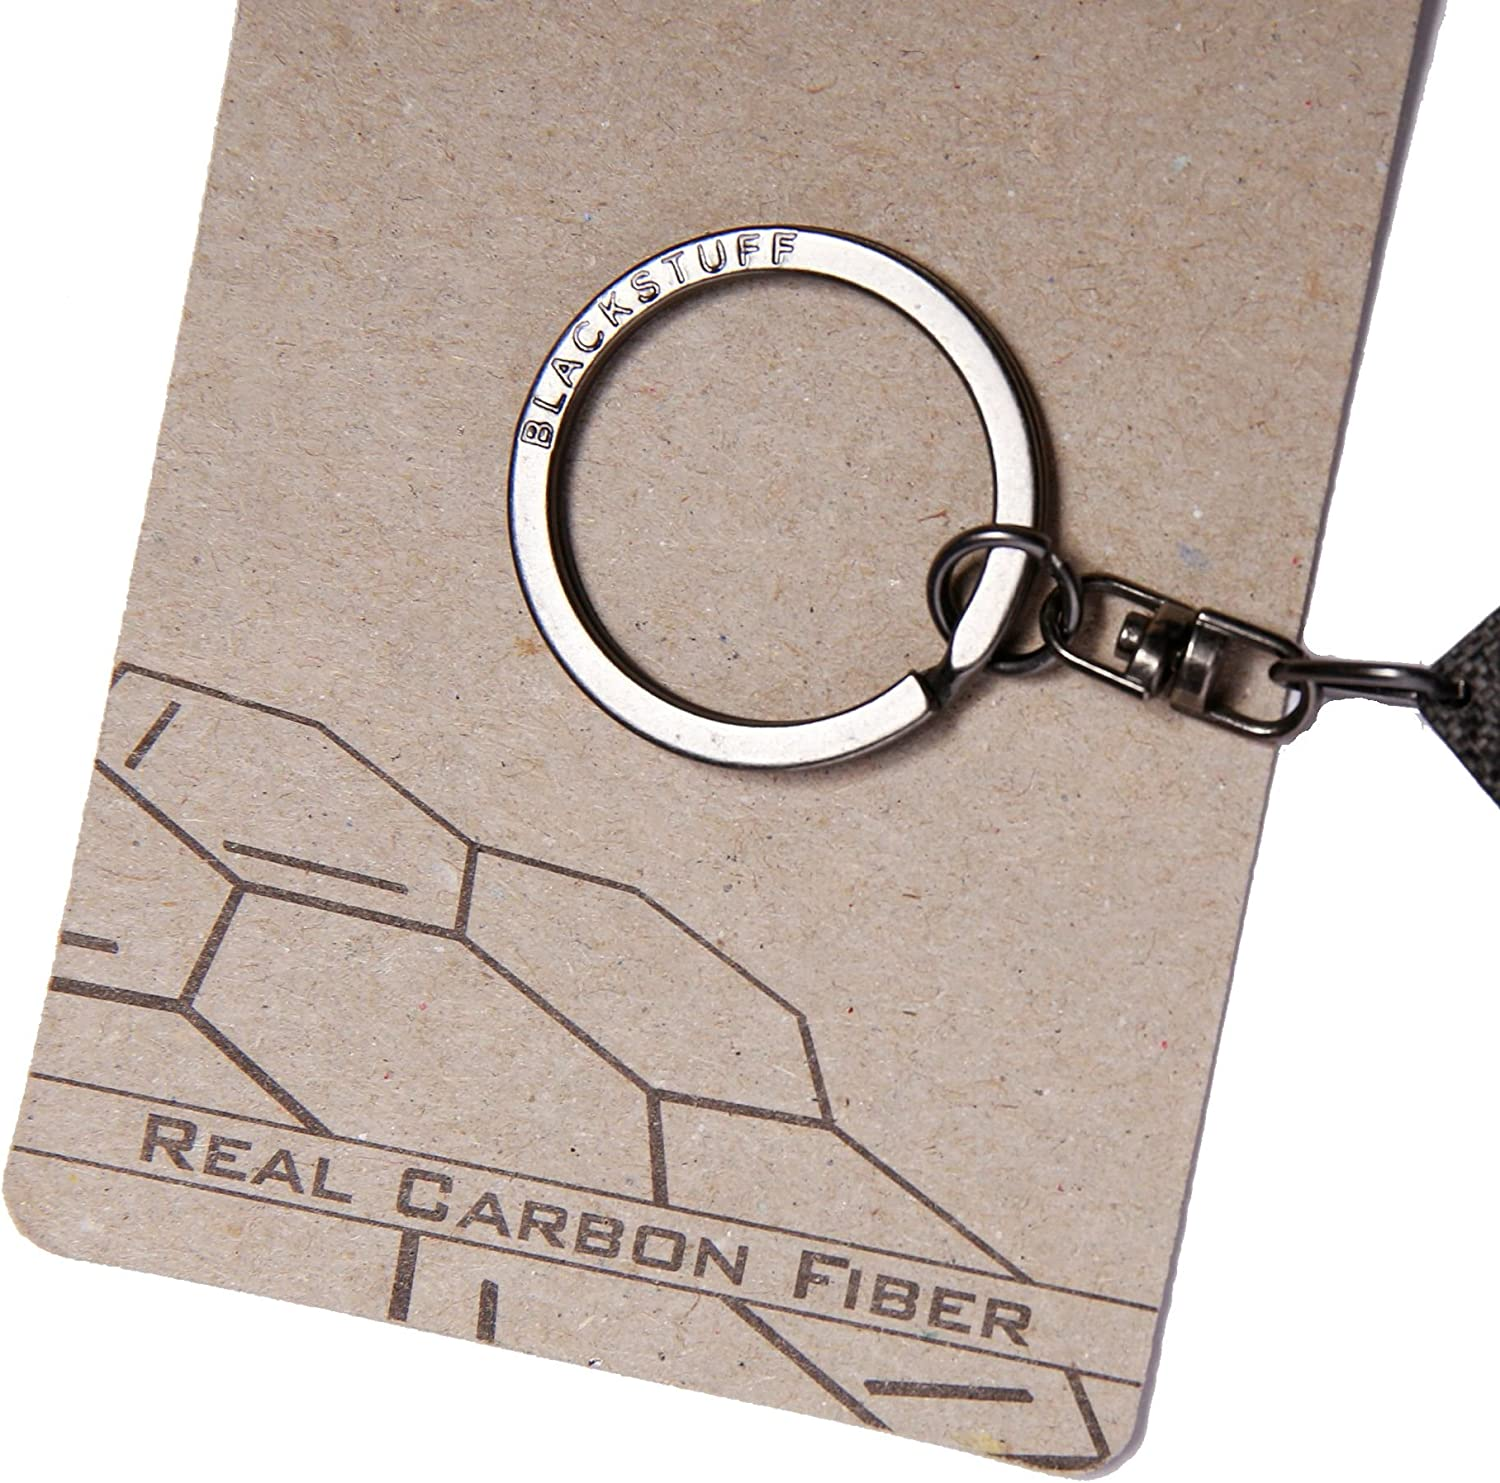 BlackStuff Carbon Fiber Keychain Keyring Ring Holder Compatible with F12 F13 M6 6 Series 640 650 BS-154